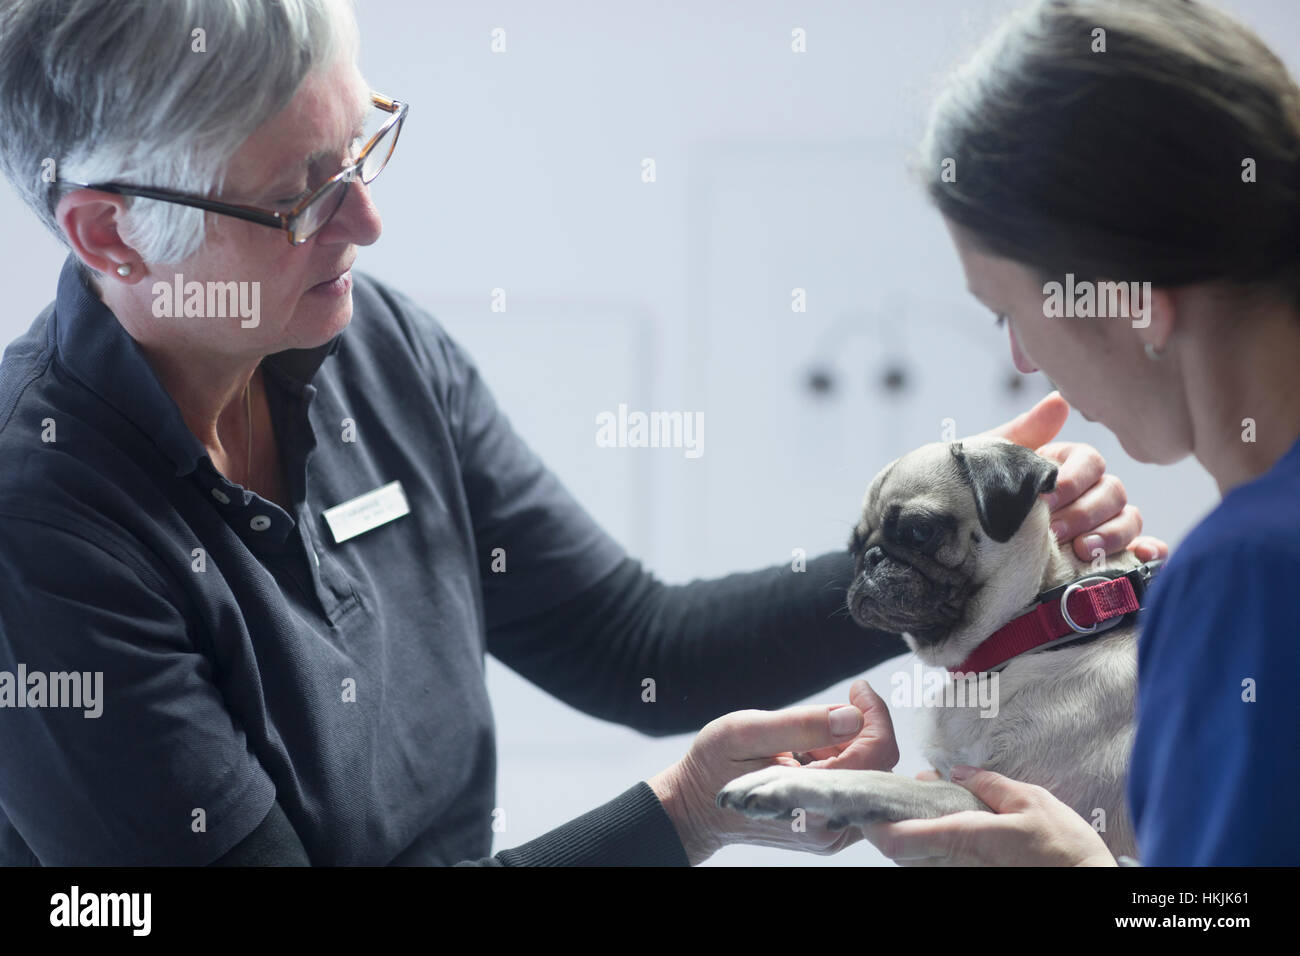 Veterinarians doing a check-up on a dog,Breisach,Baden-Württemberg,Germany - Stock Image